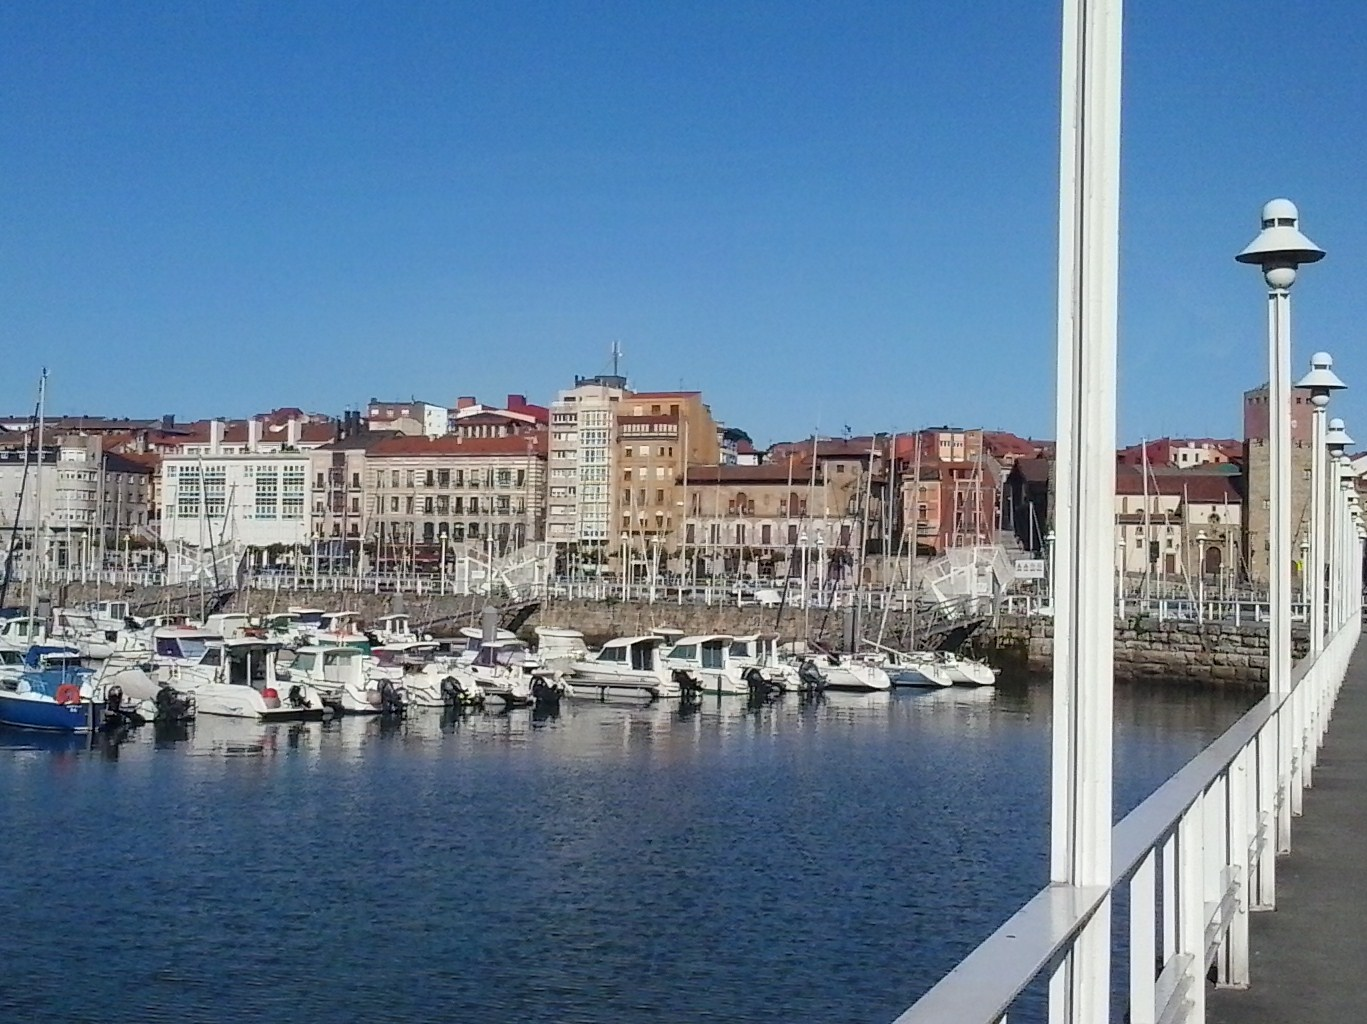 Gijón: Cimavilla at day. Swimming, sun bathing, boating – just some of the fun in a city full of beaches.